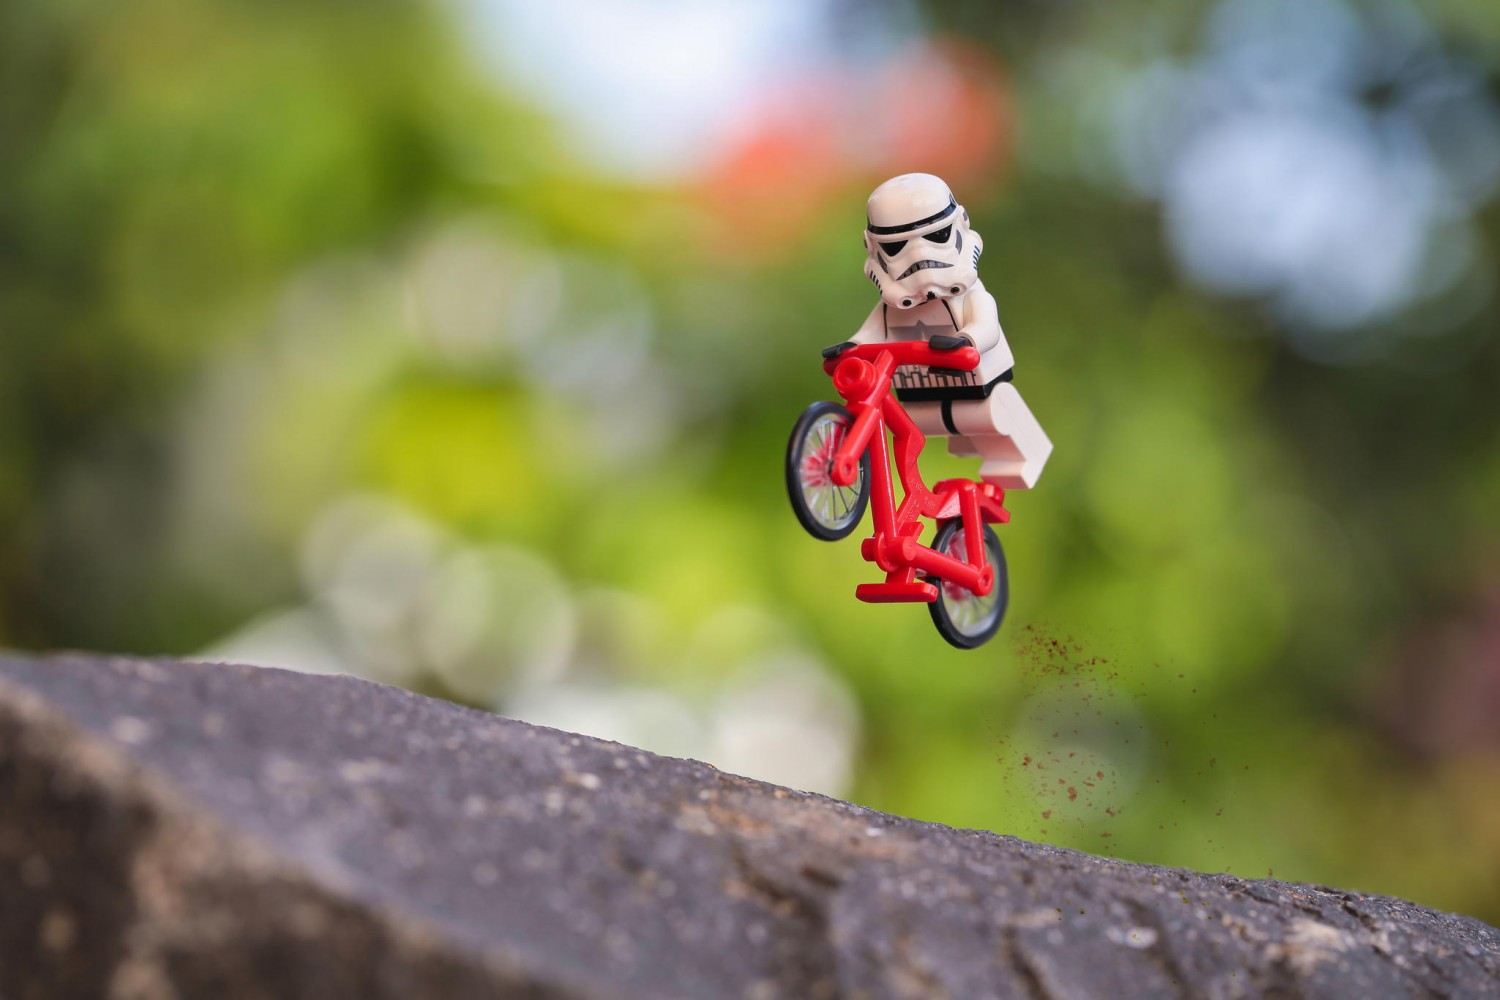 48+ Best Photos Of Stormtroopers Doing Awesome Things